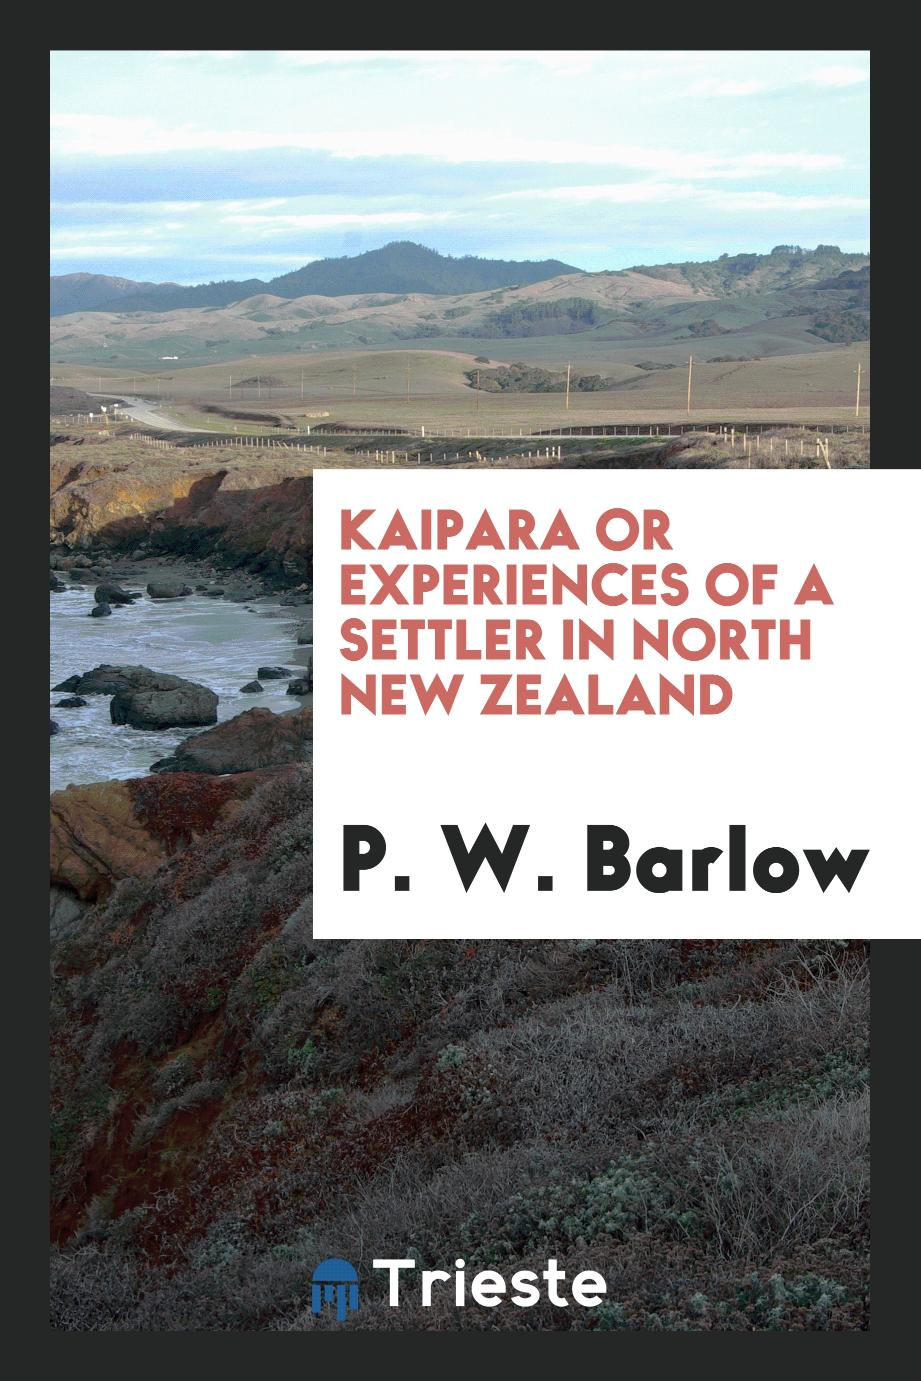 Kaipara or Experiences of a settler in North New Zealand